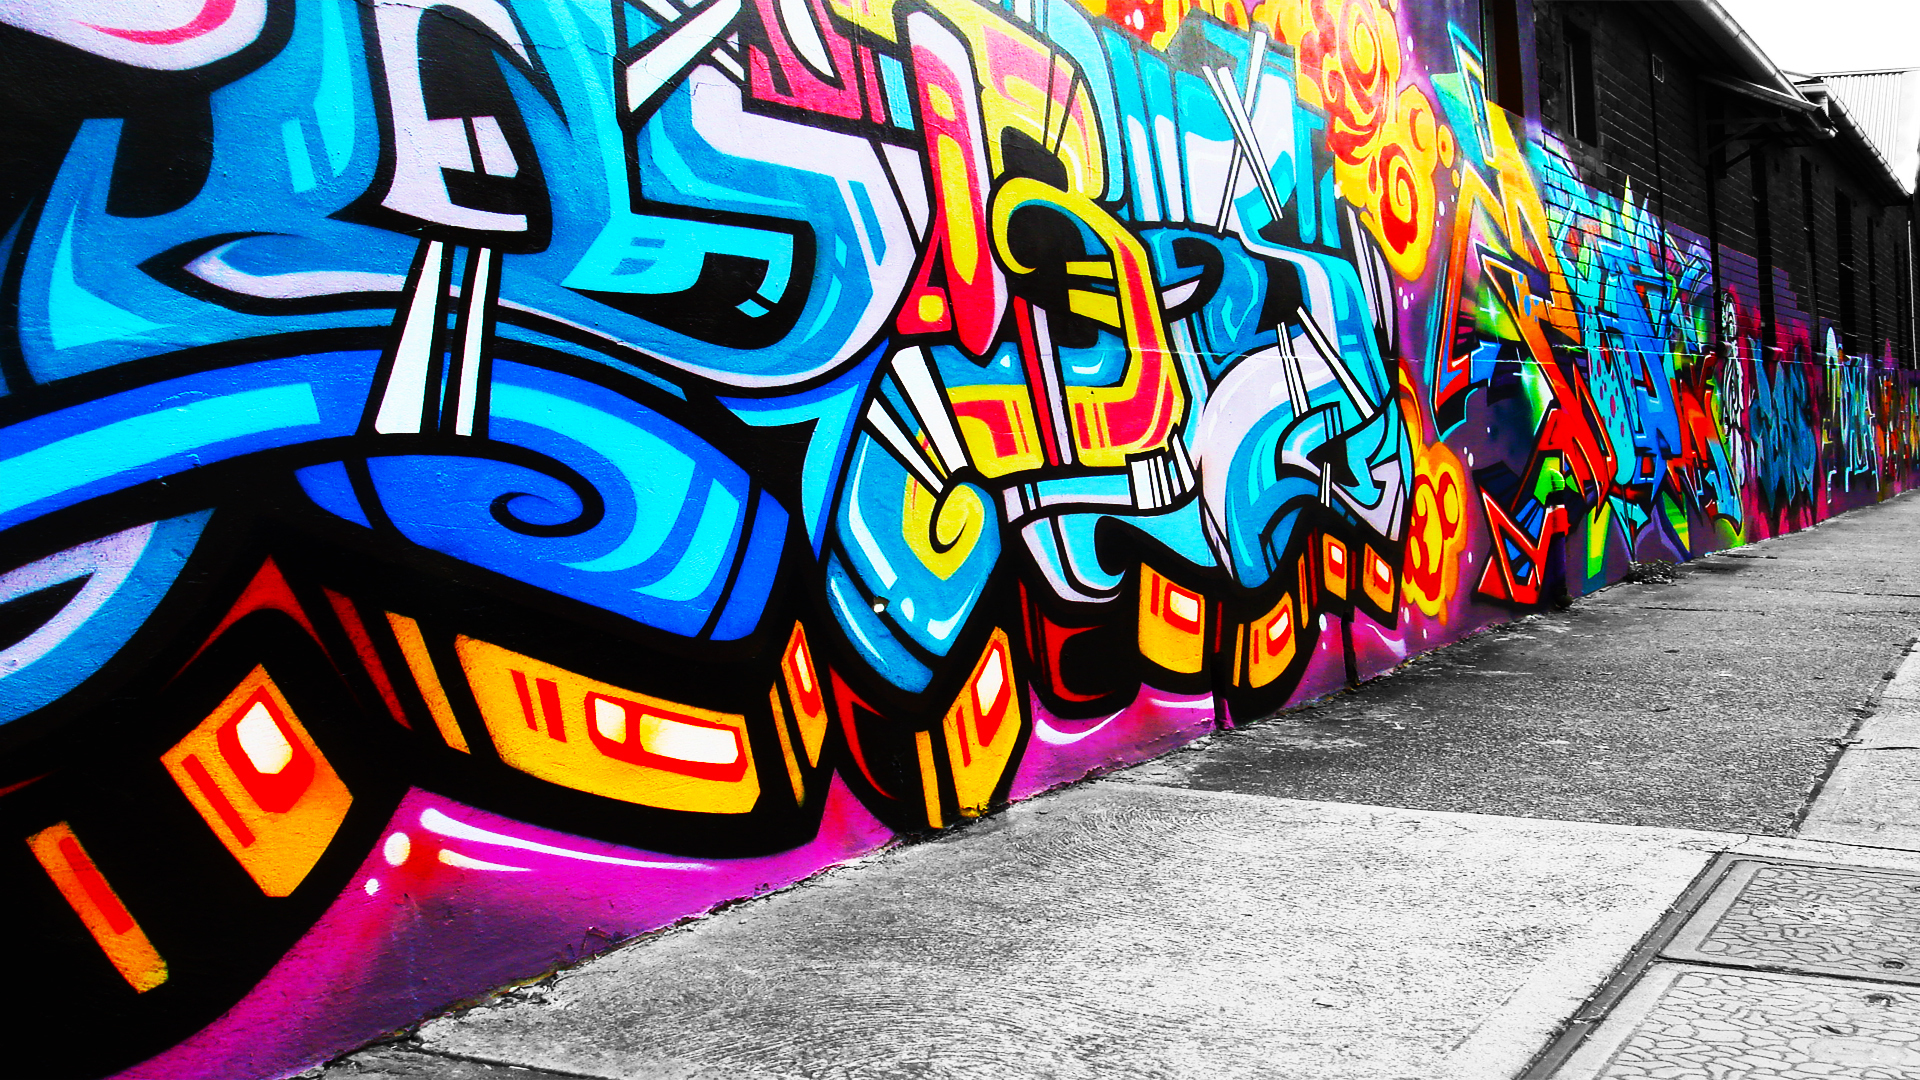 Graffiti wallpapers - Free A9 fonts HD Desktop background images pictures downloads